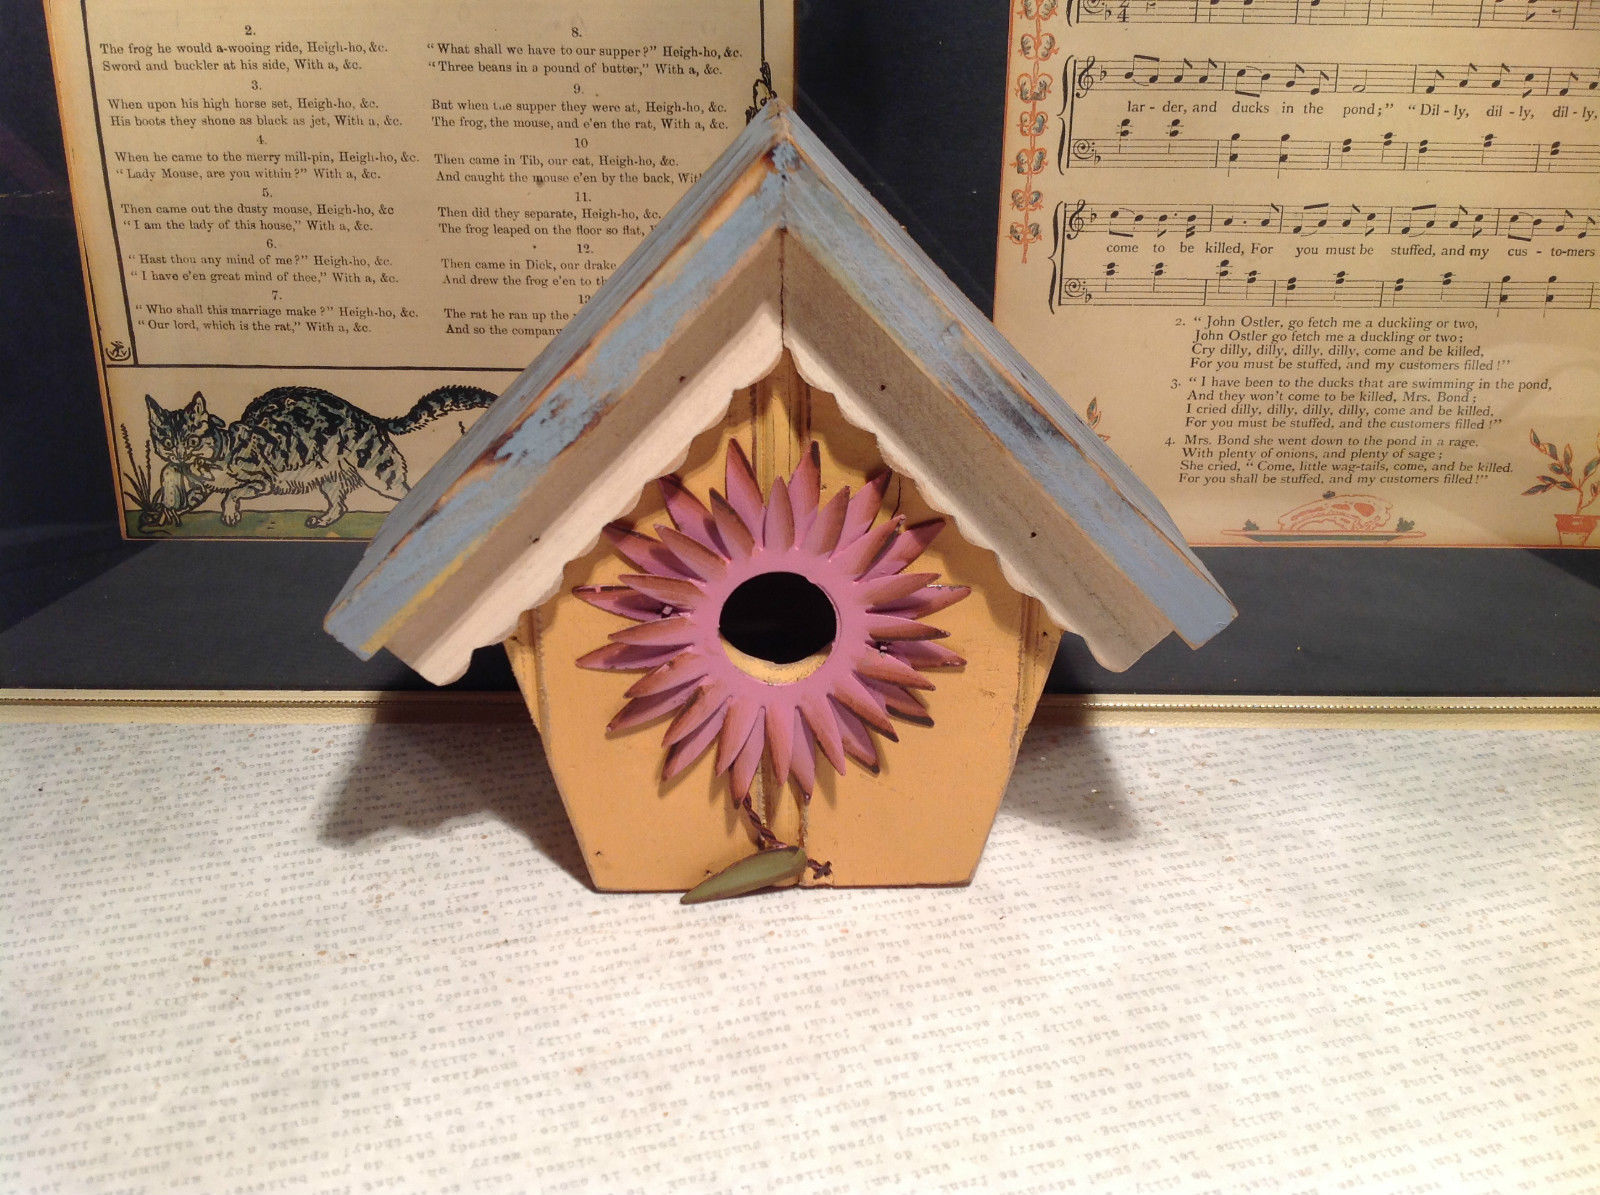 Rustic Blue and Beige Faux Bird House with Pink Flower Wall Decoration